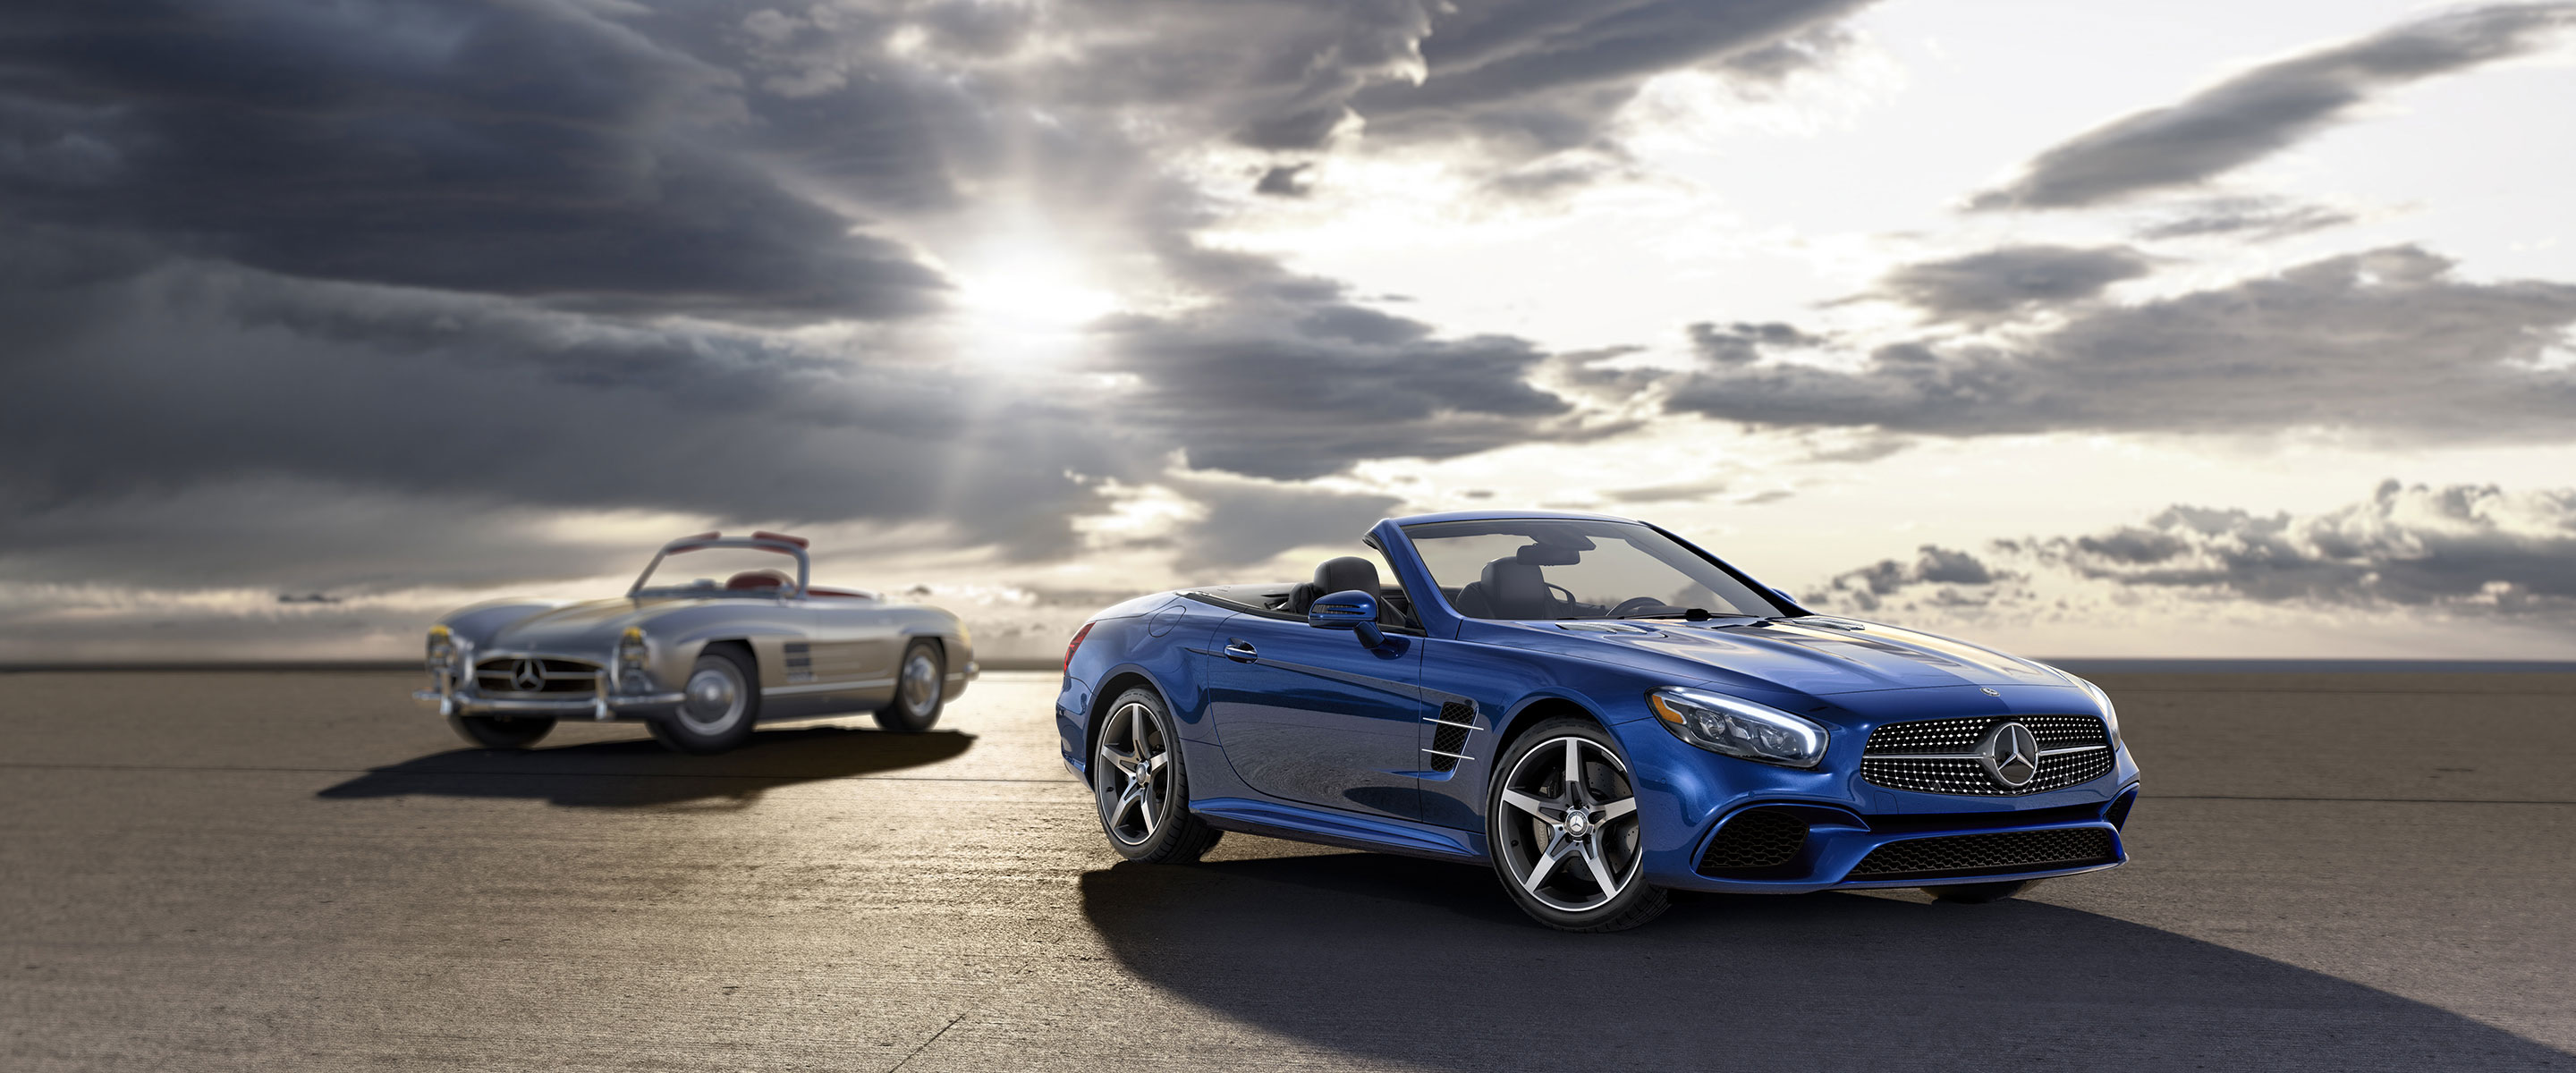 New mercedes benz sl roadster buy lease and finance for Mercedes benz sl convertible